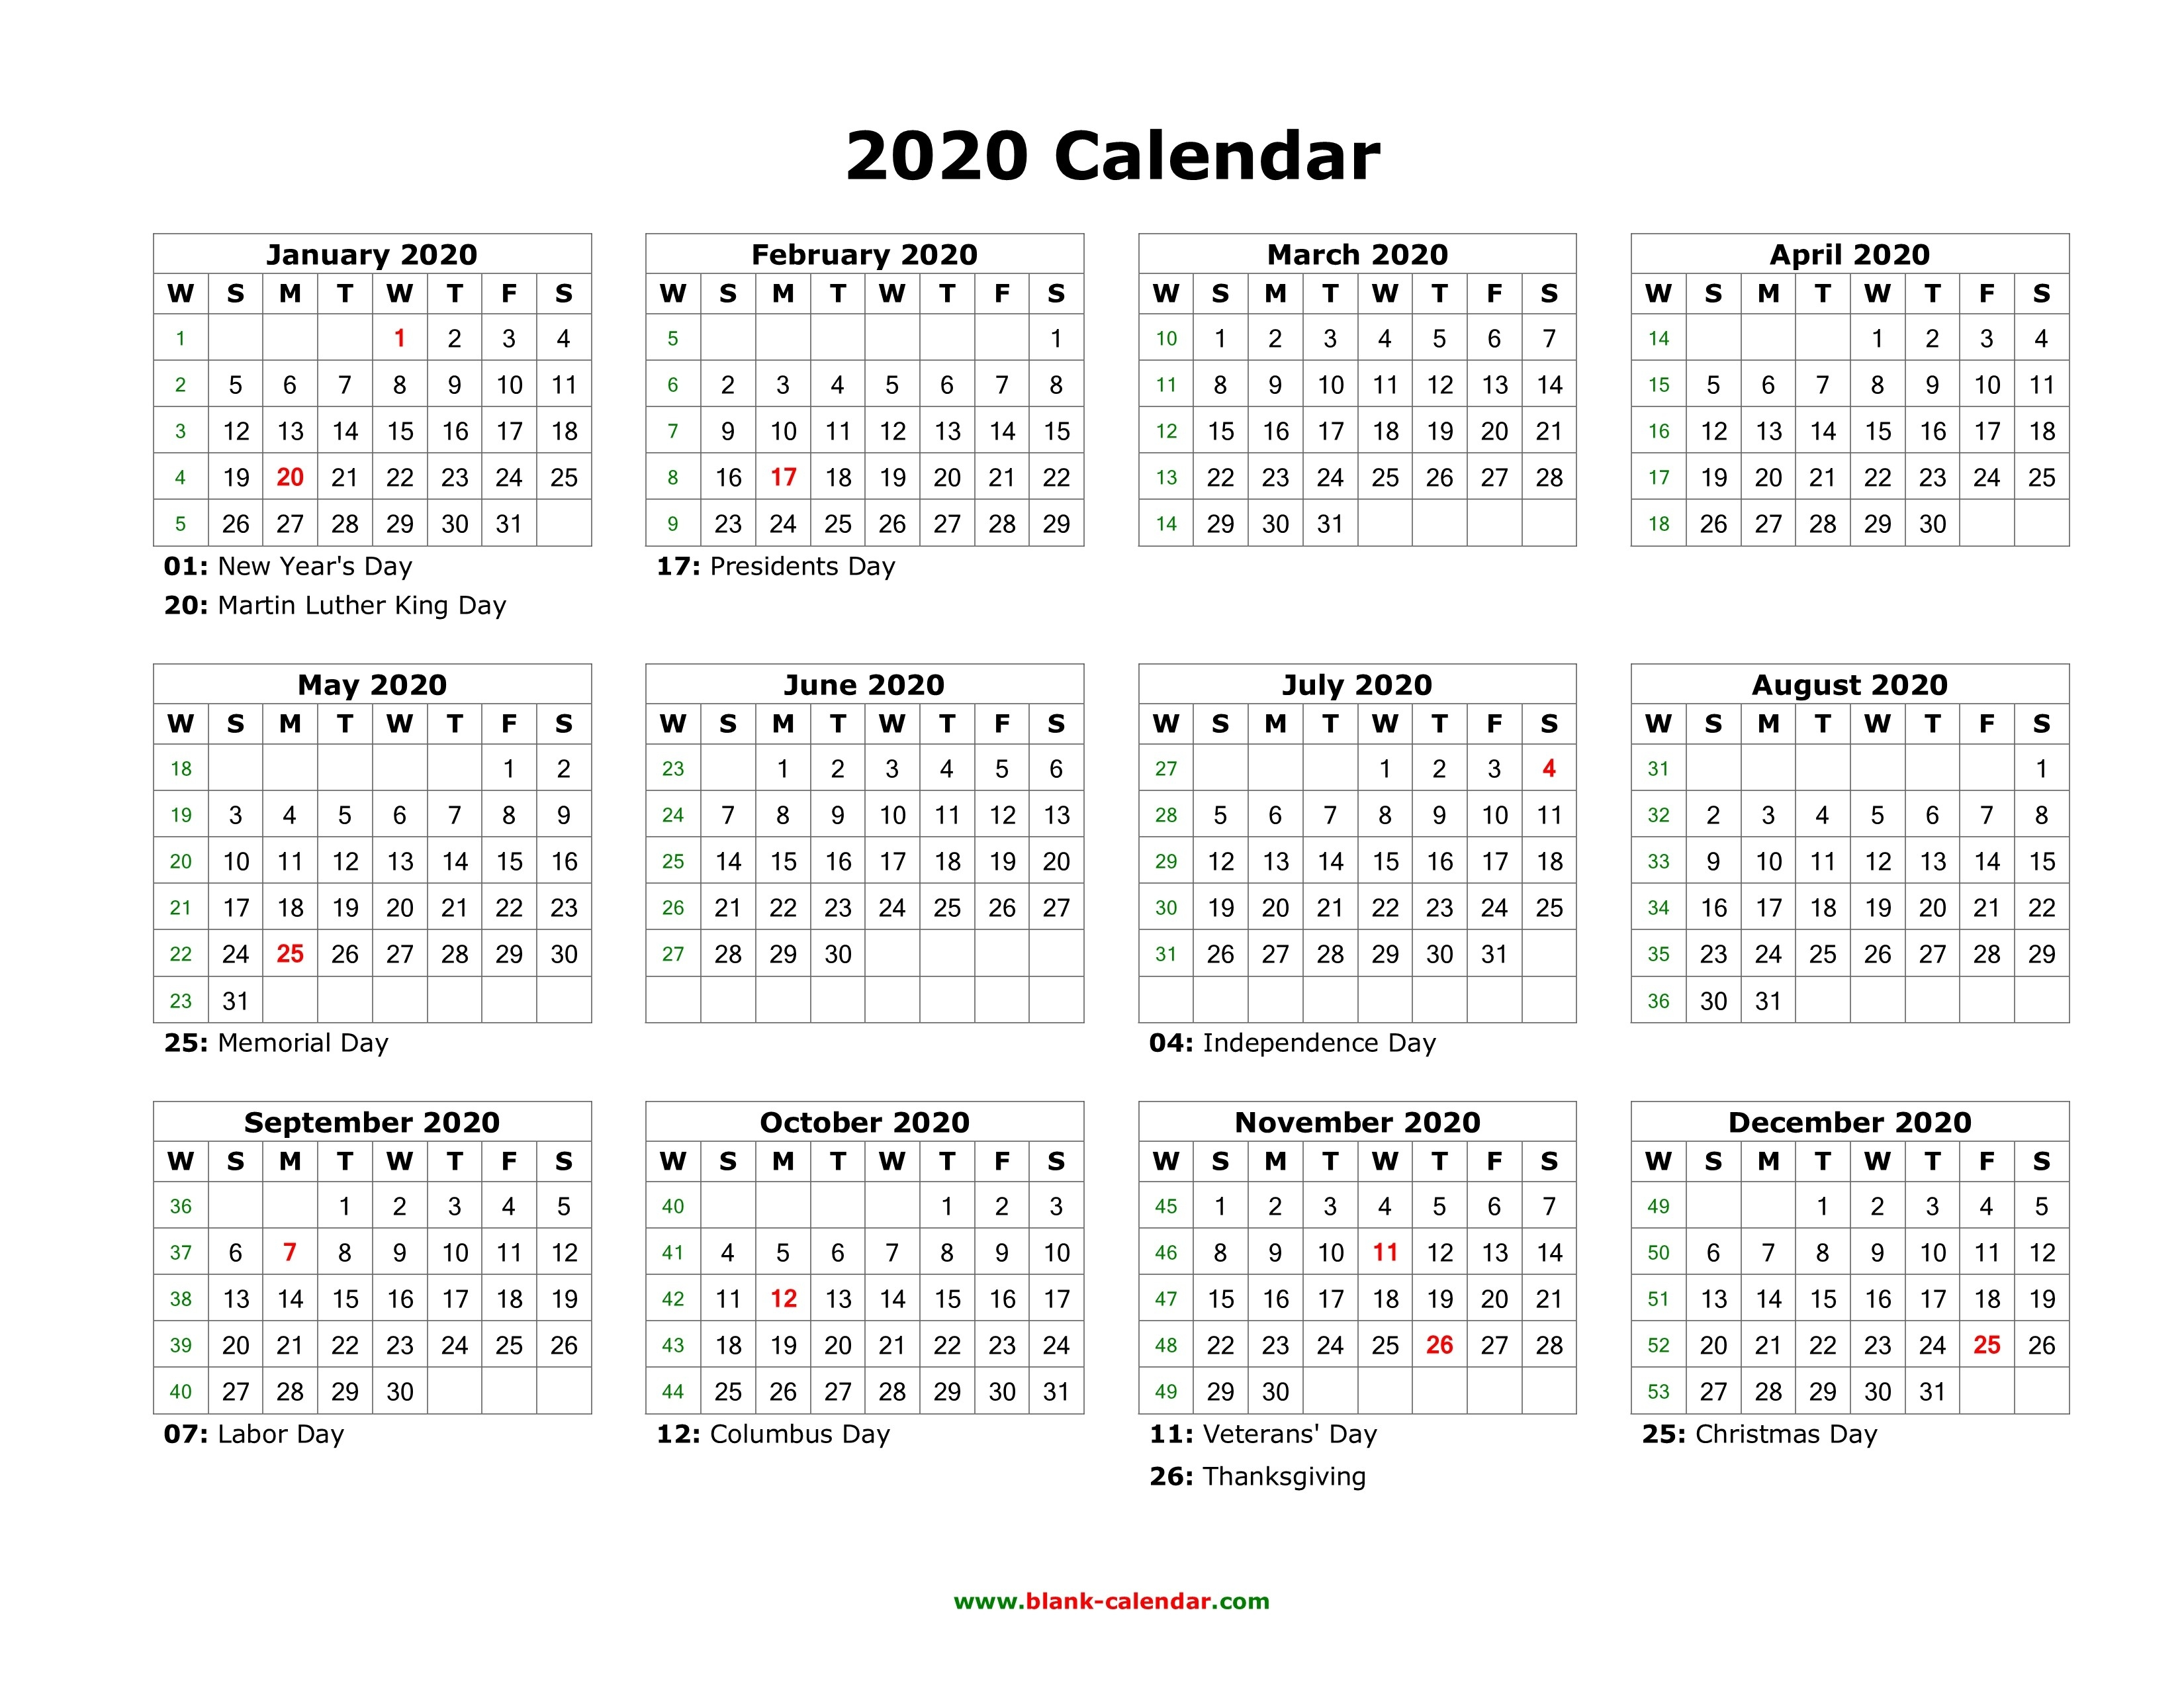 Blank Calendar 2020 | Free Download Calendar Templates-Month Template 2020 Printable Free Starting On Monday